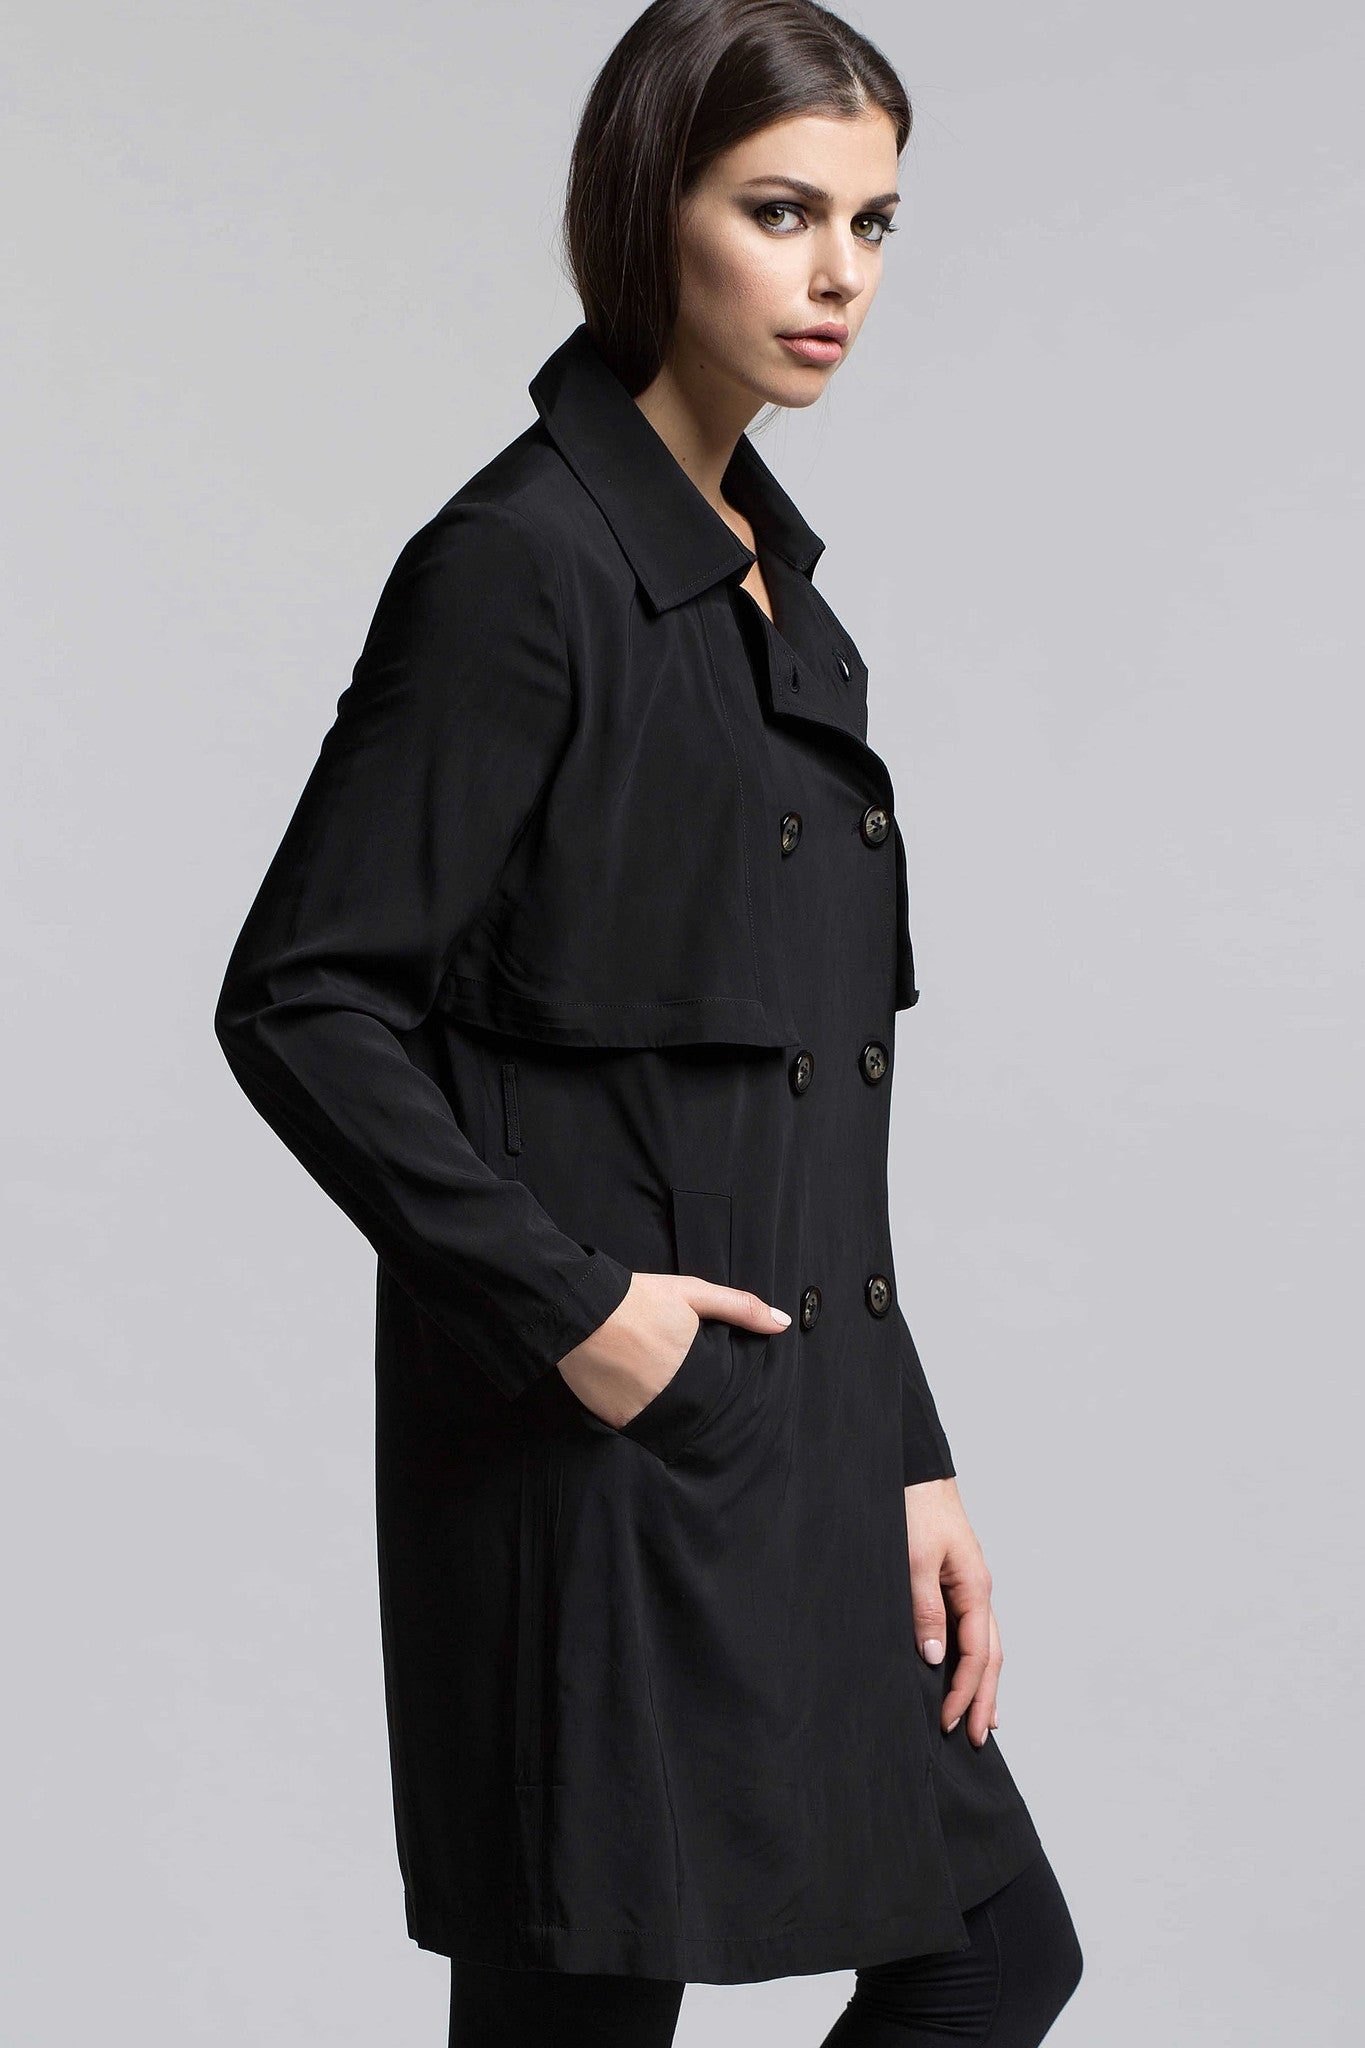 Otodix Black Light Trench